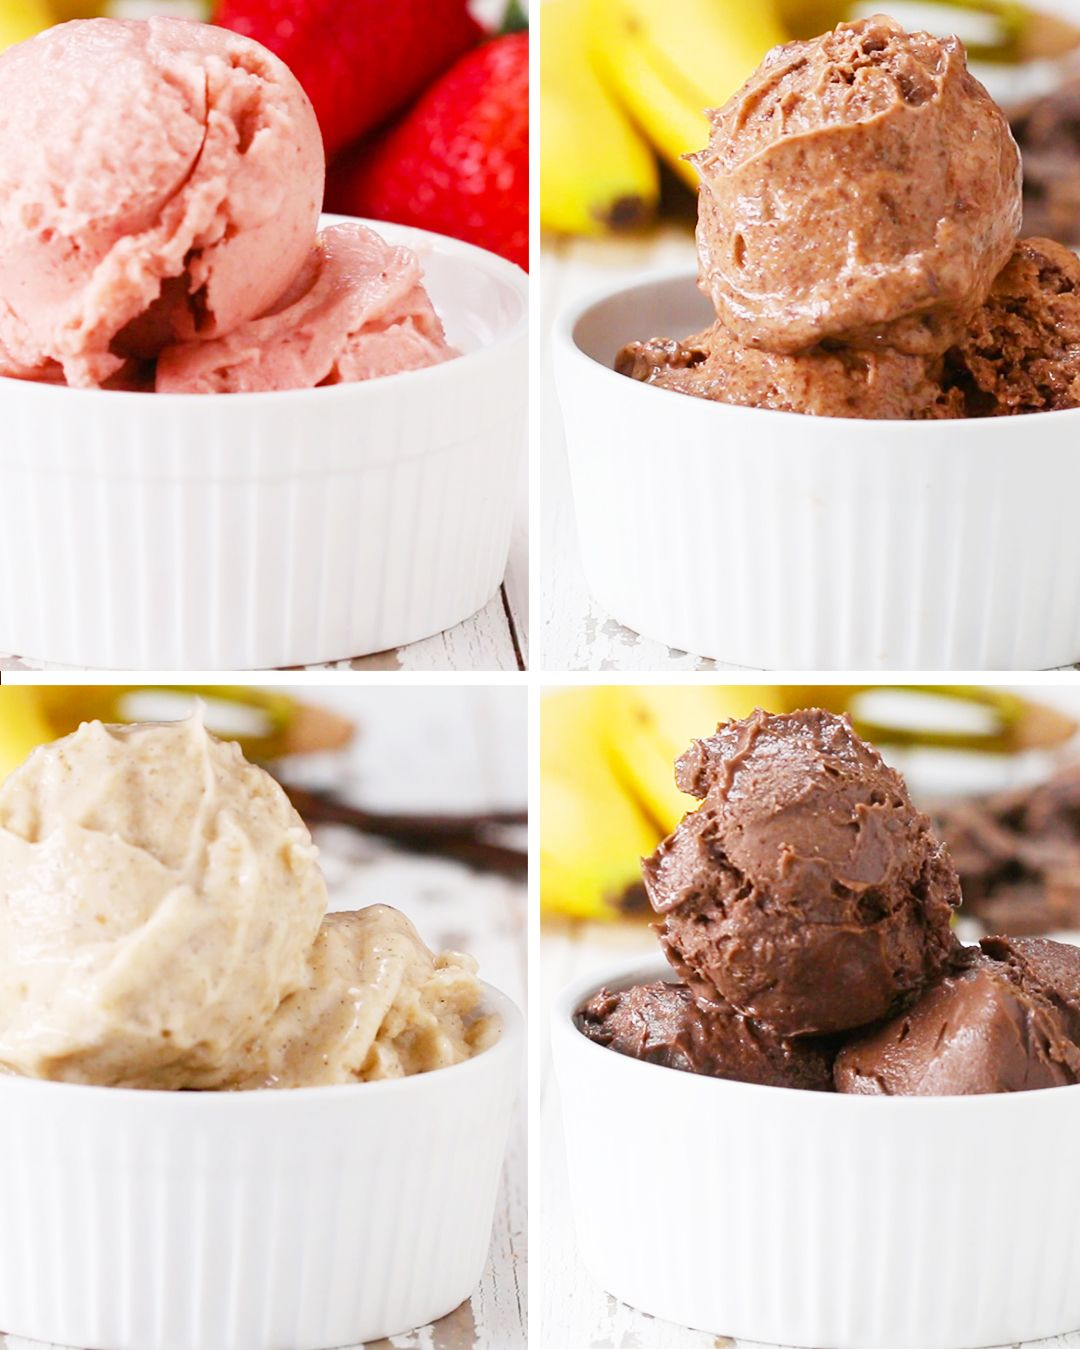 Chocolate ice cream conquers vanilla as a source of green energy 58